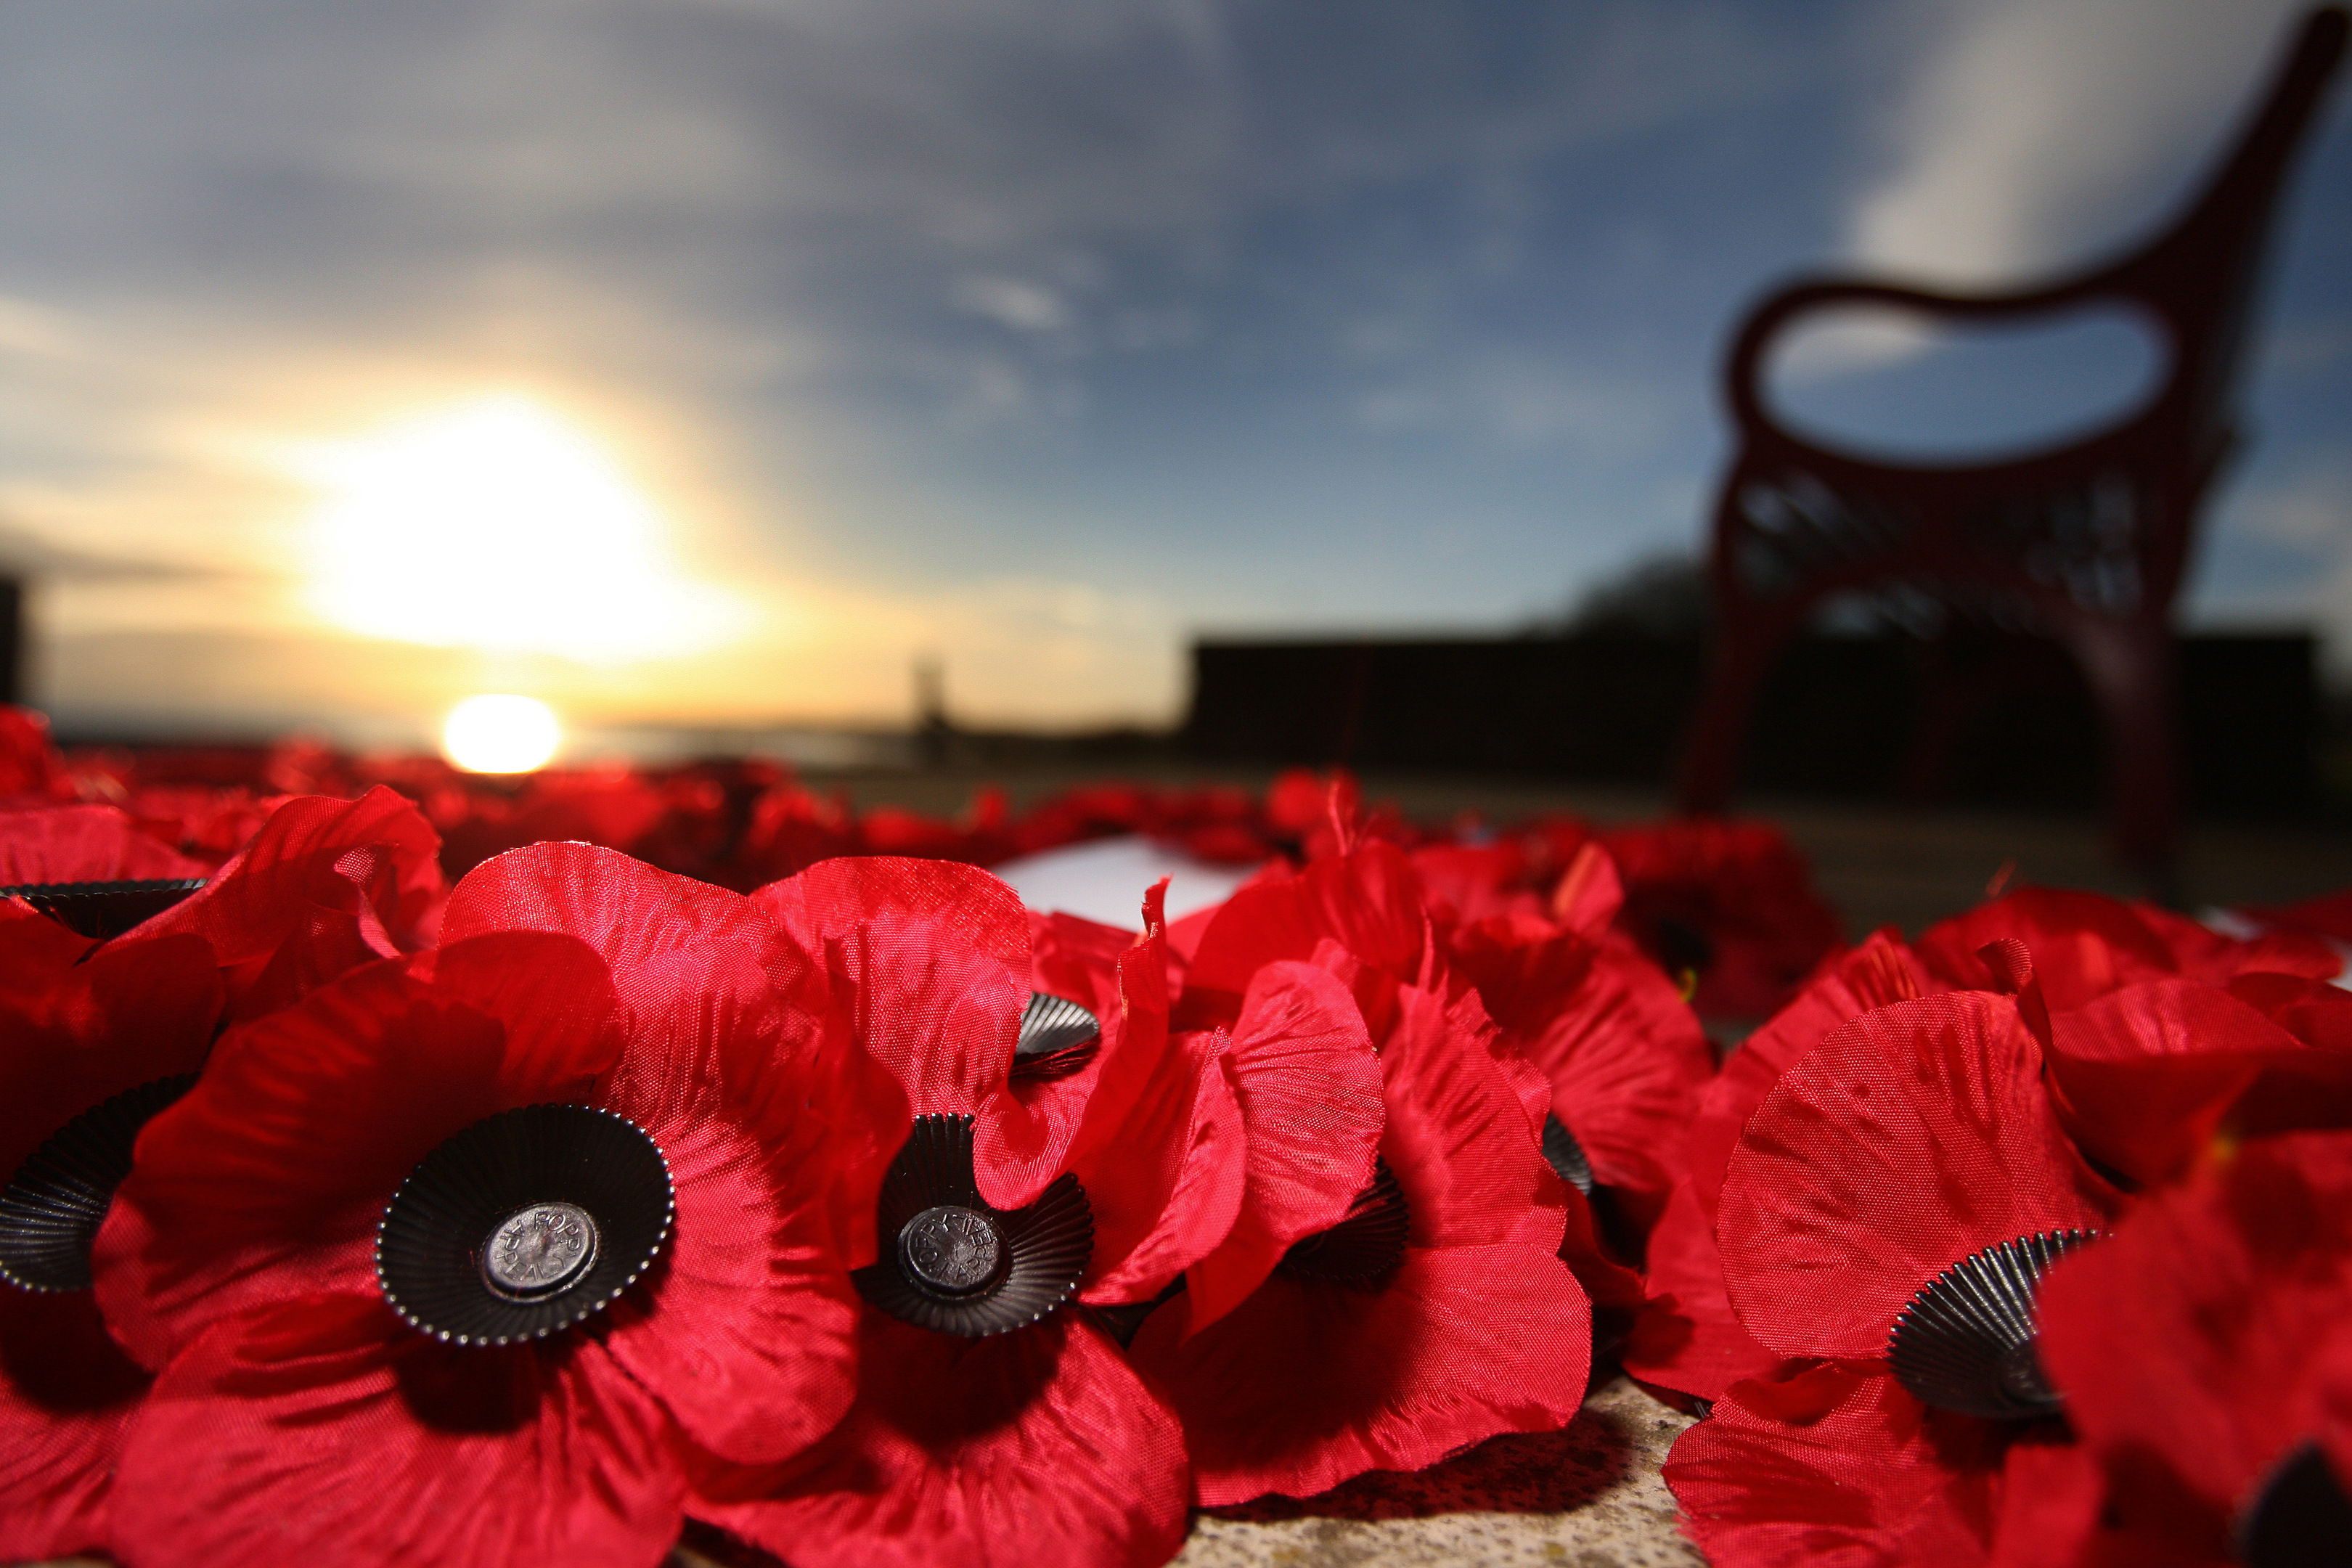 A campaign by armed forces charity Poppyscotland highlighted the issue